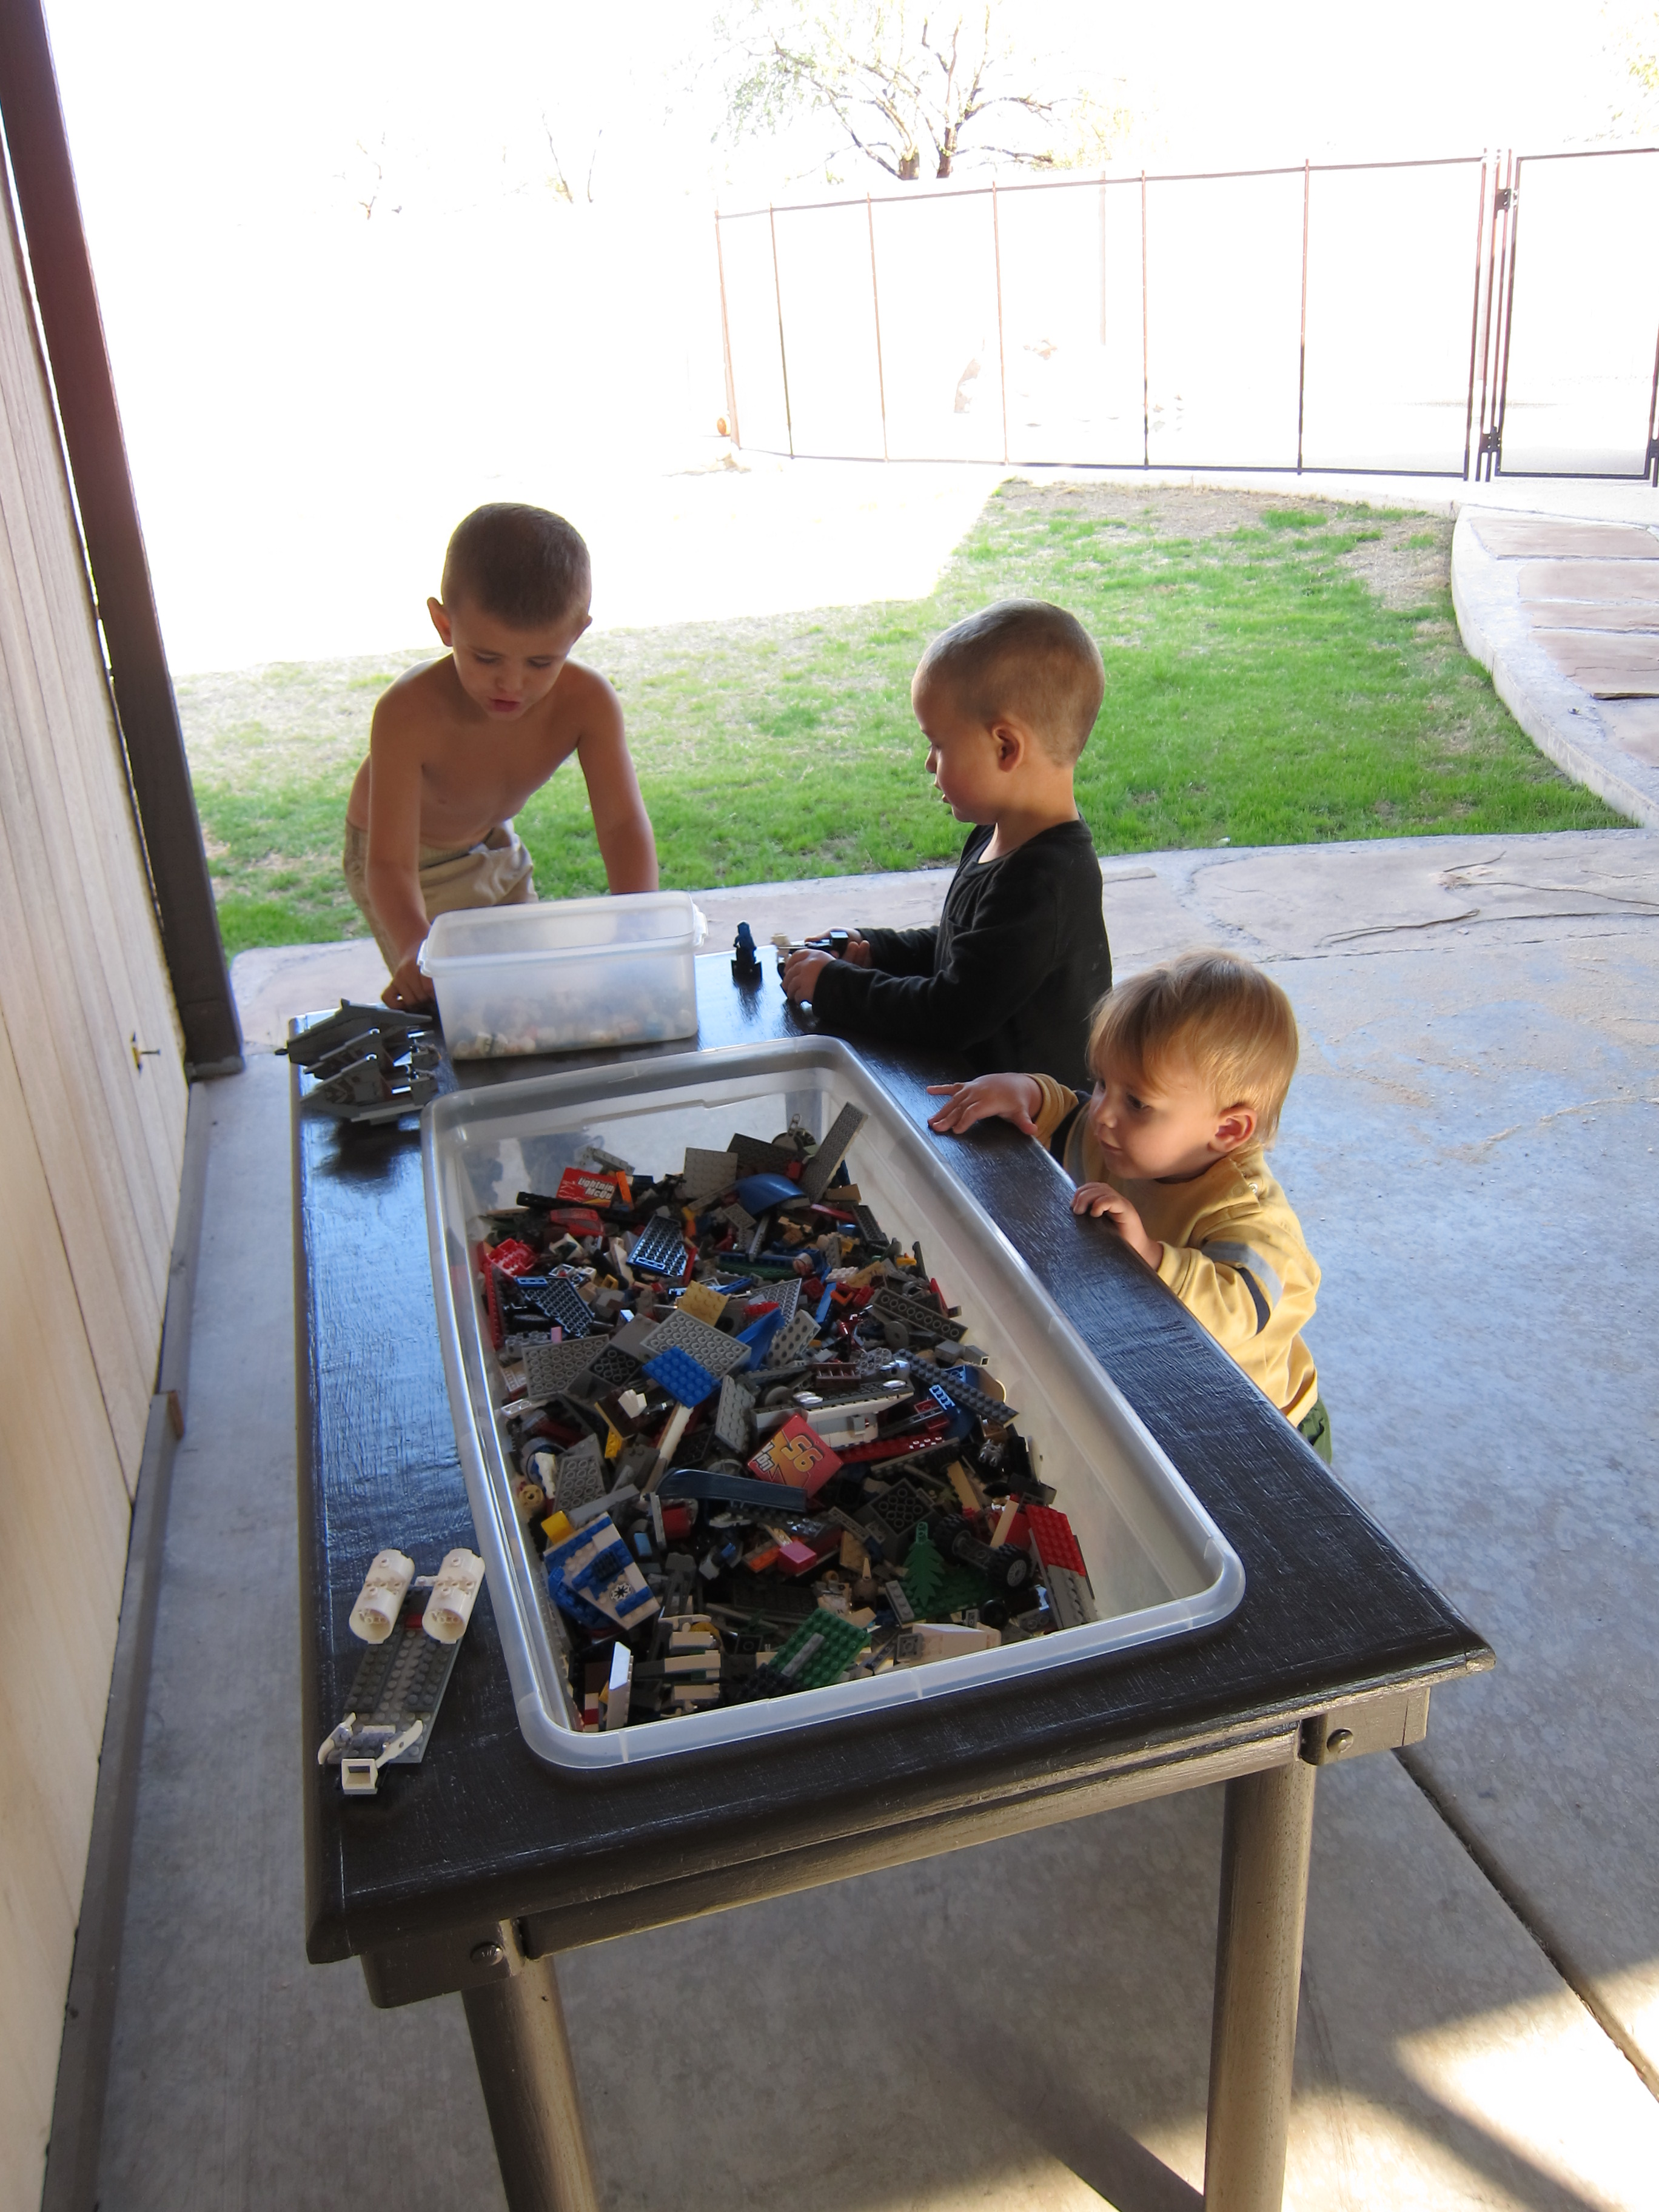 I Purchased A Bin To Store The Legos In That Is The Same Size As The Bin In  The Sensory Table. It Is Actually A Really Good Size And Depth For Storing  ...